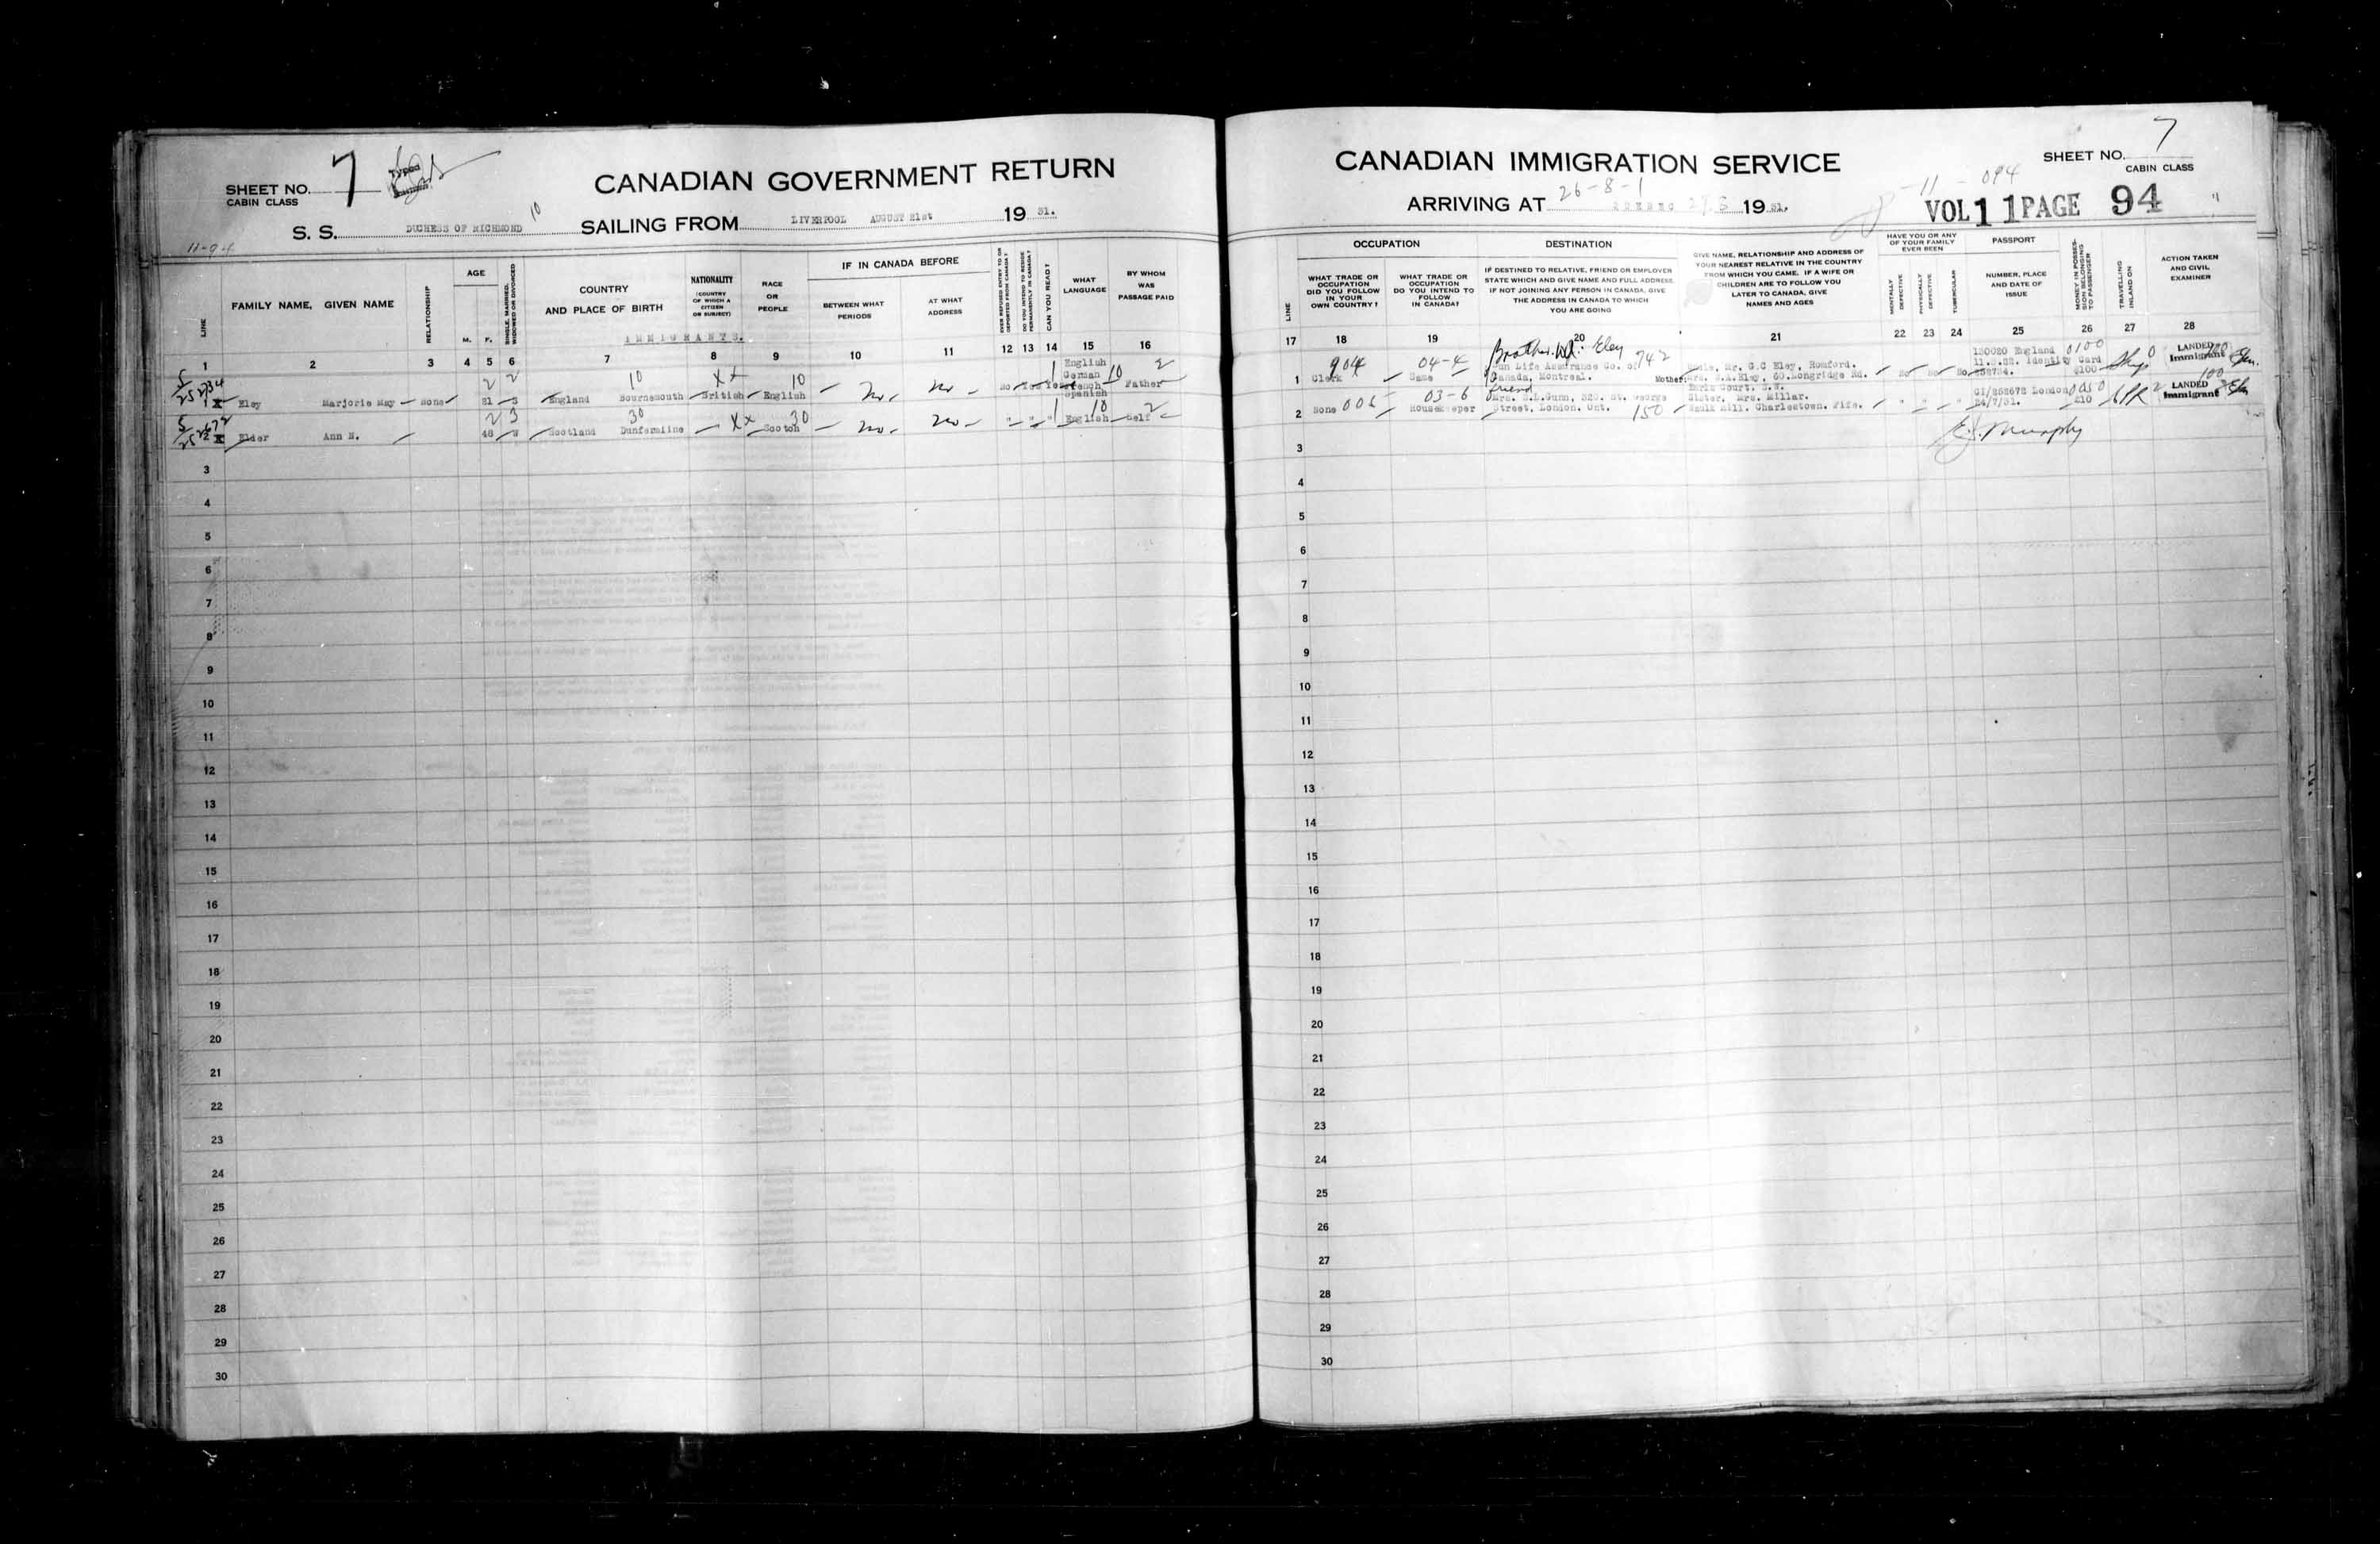 Title: Passenger Lists: Quebec City (1925-1935) - Mikan Number: 134839 - Microform: t-14775